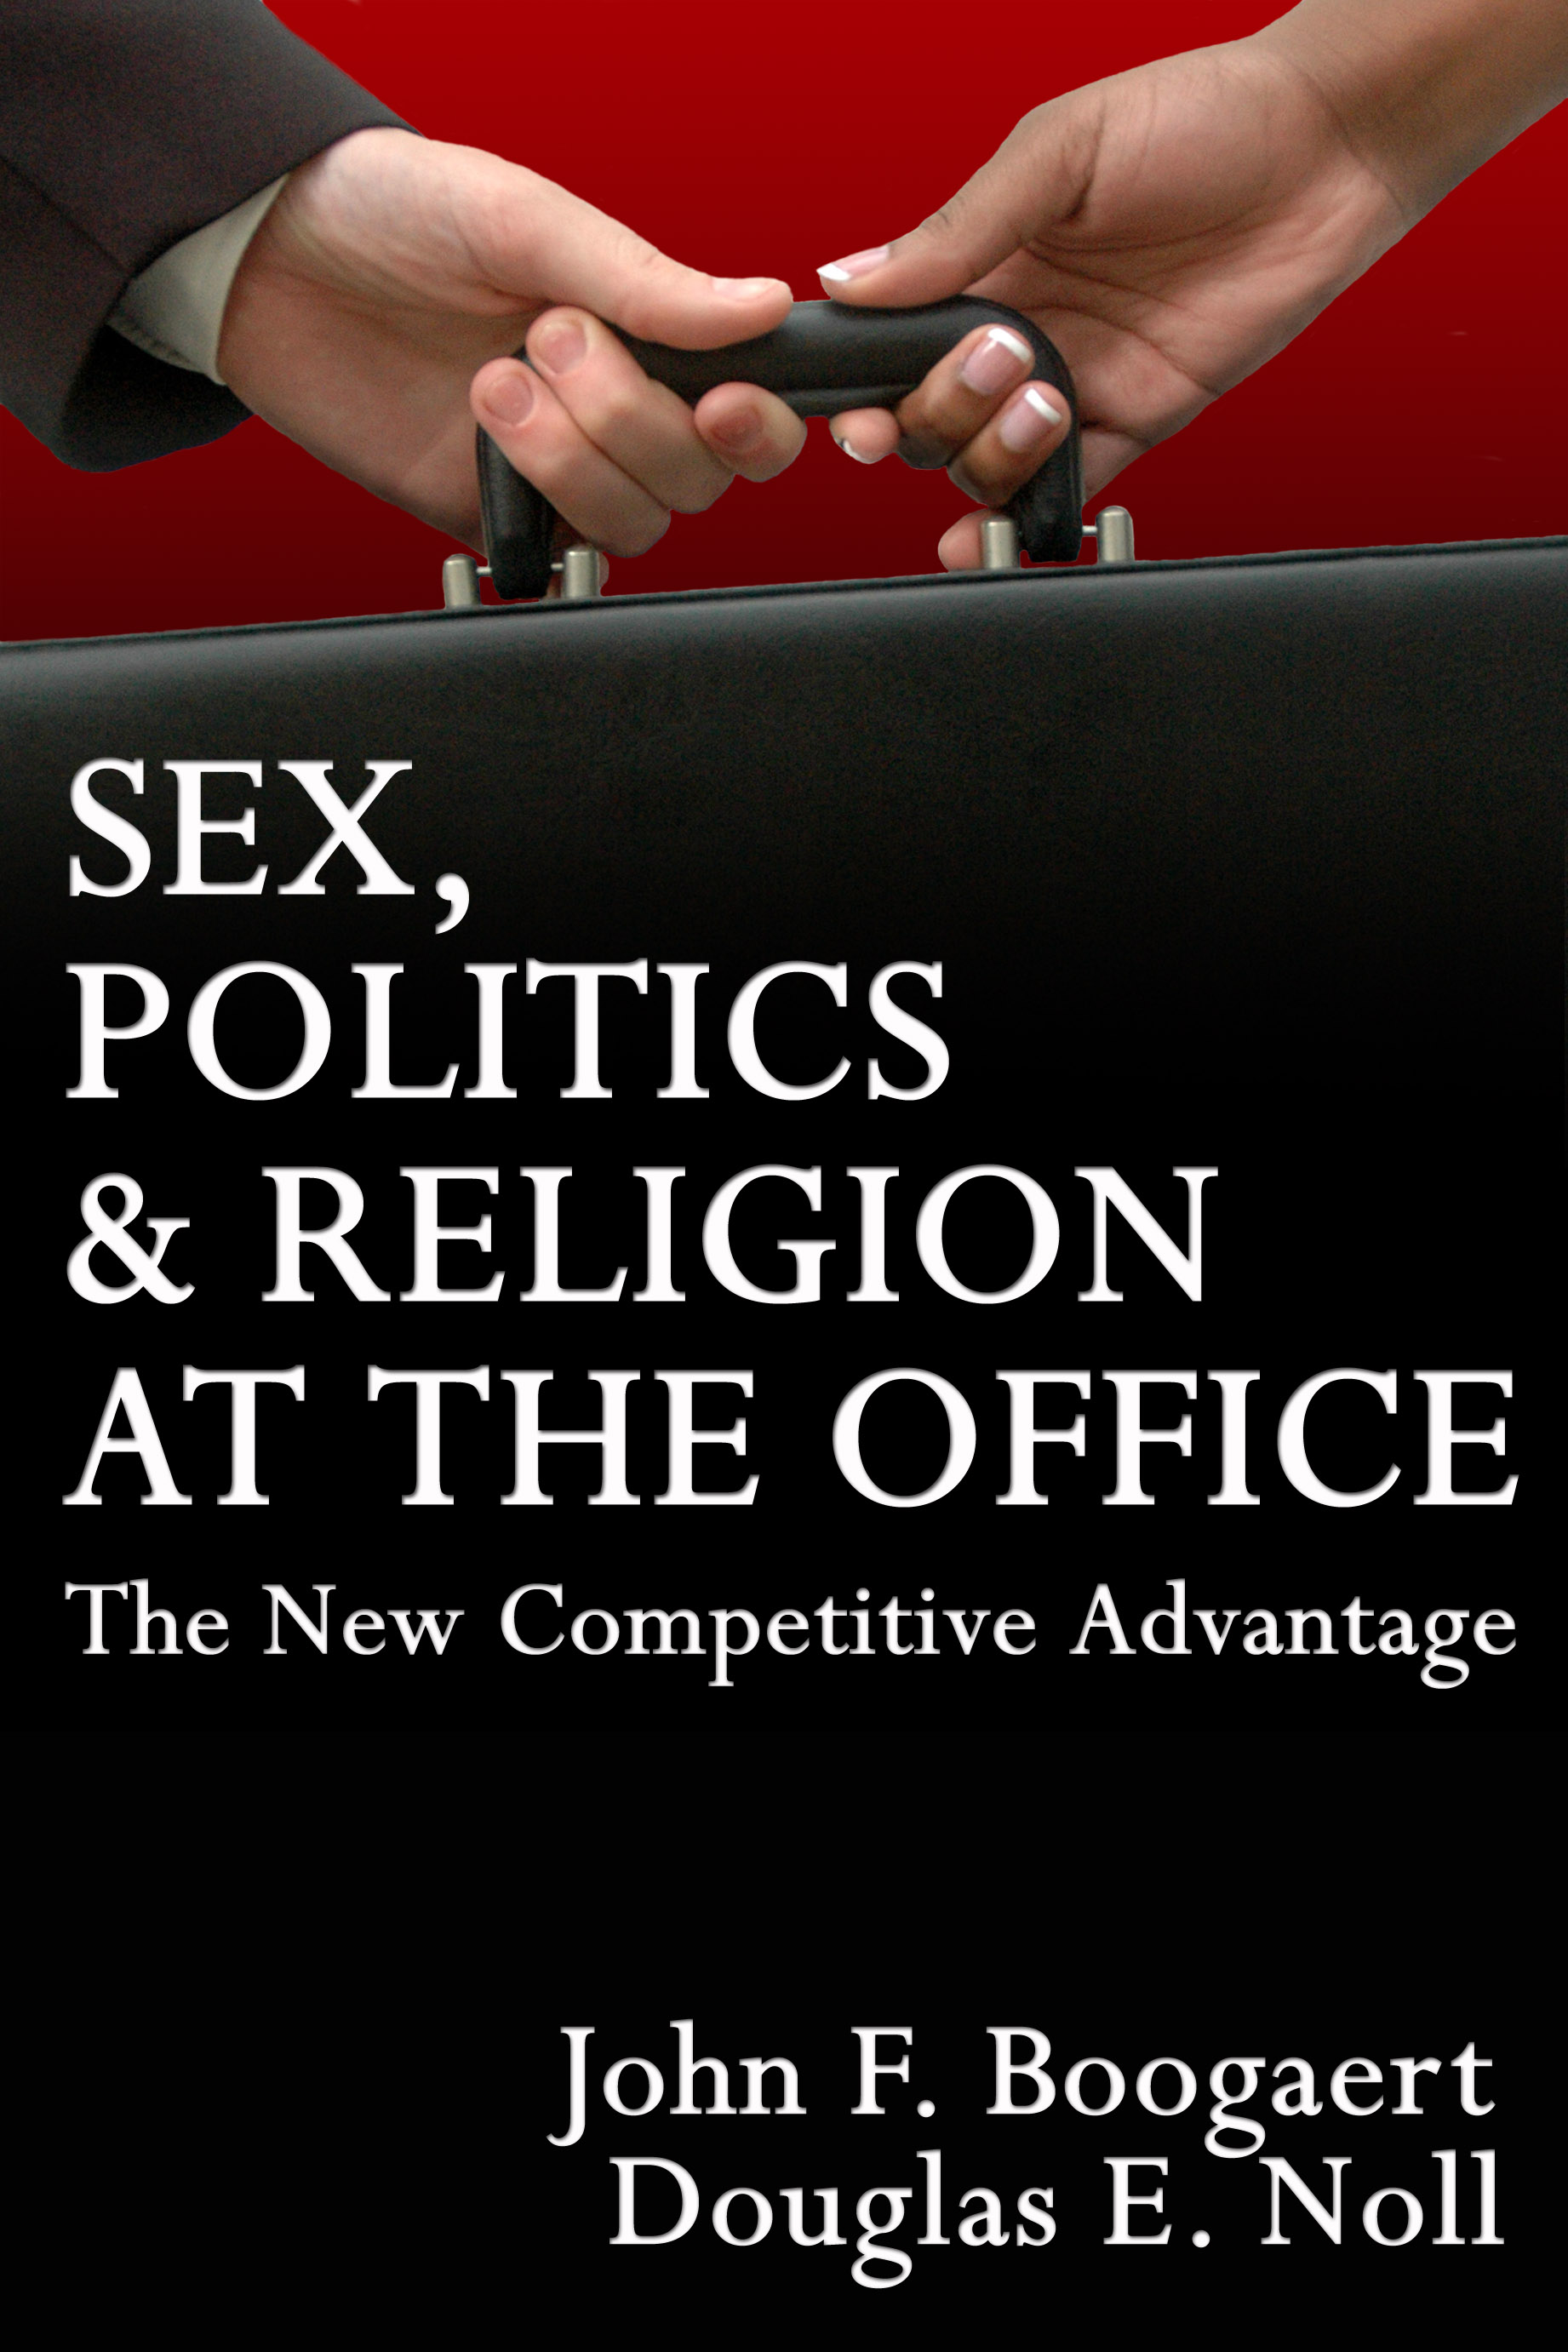 Advantage competitive new office politics religion sex